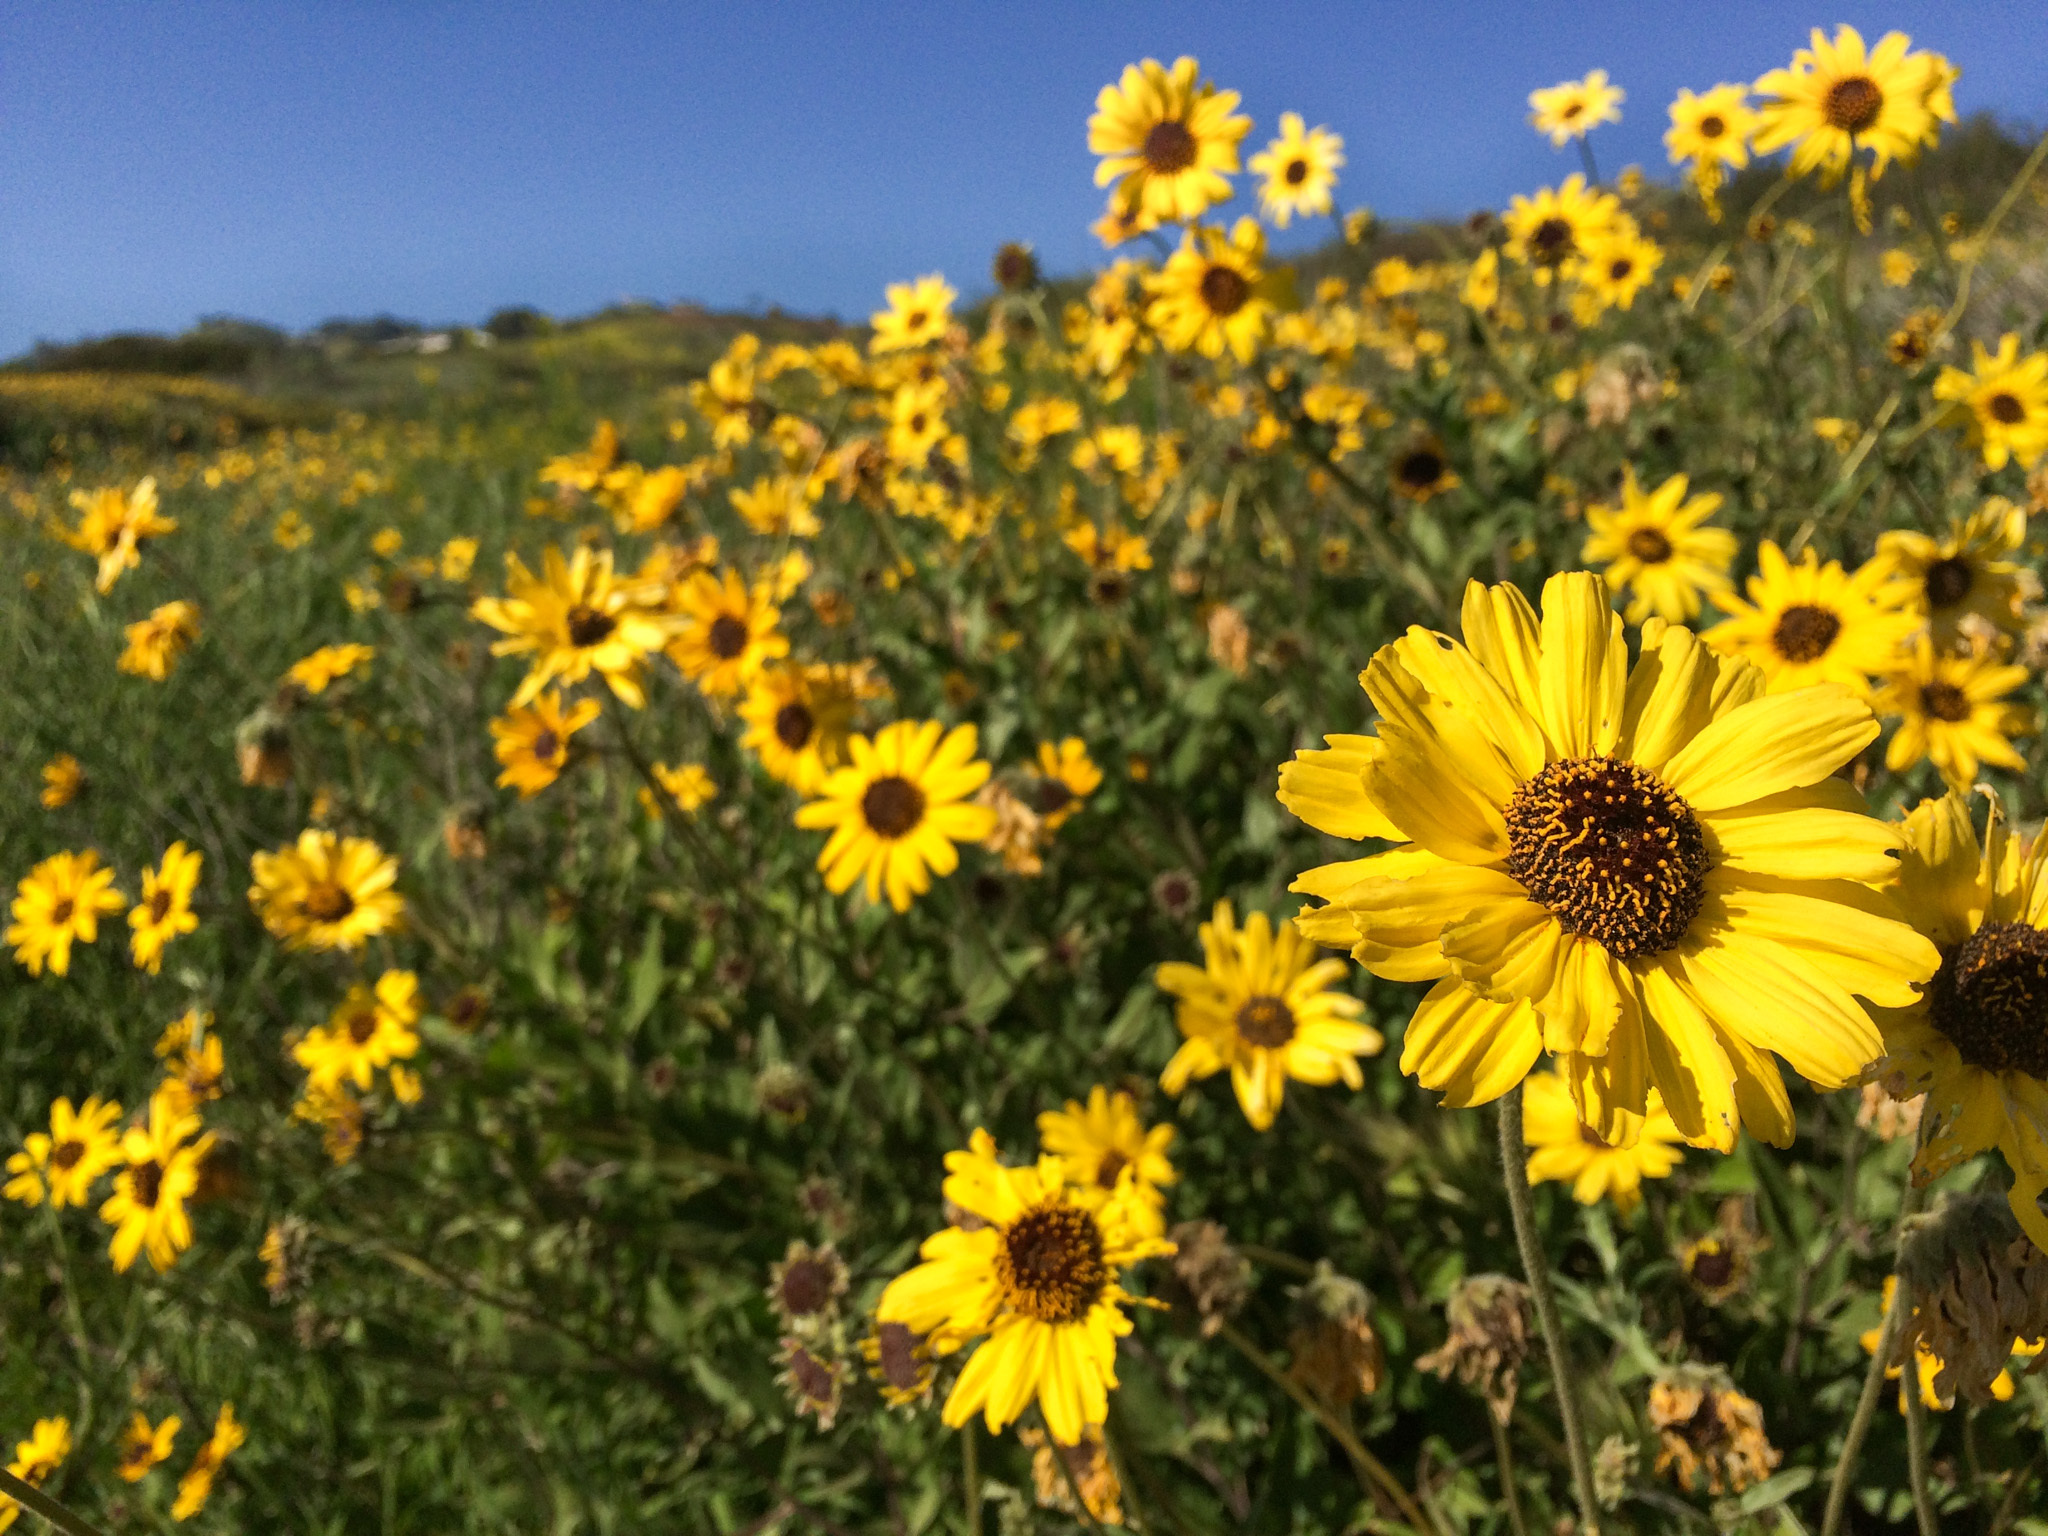 Palos Verdes wildflowers